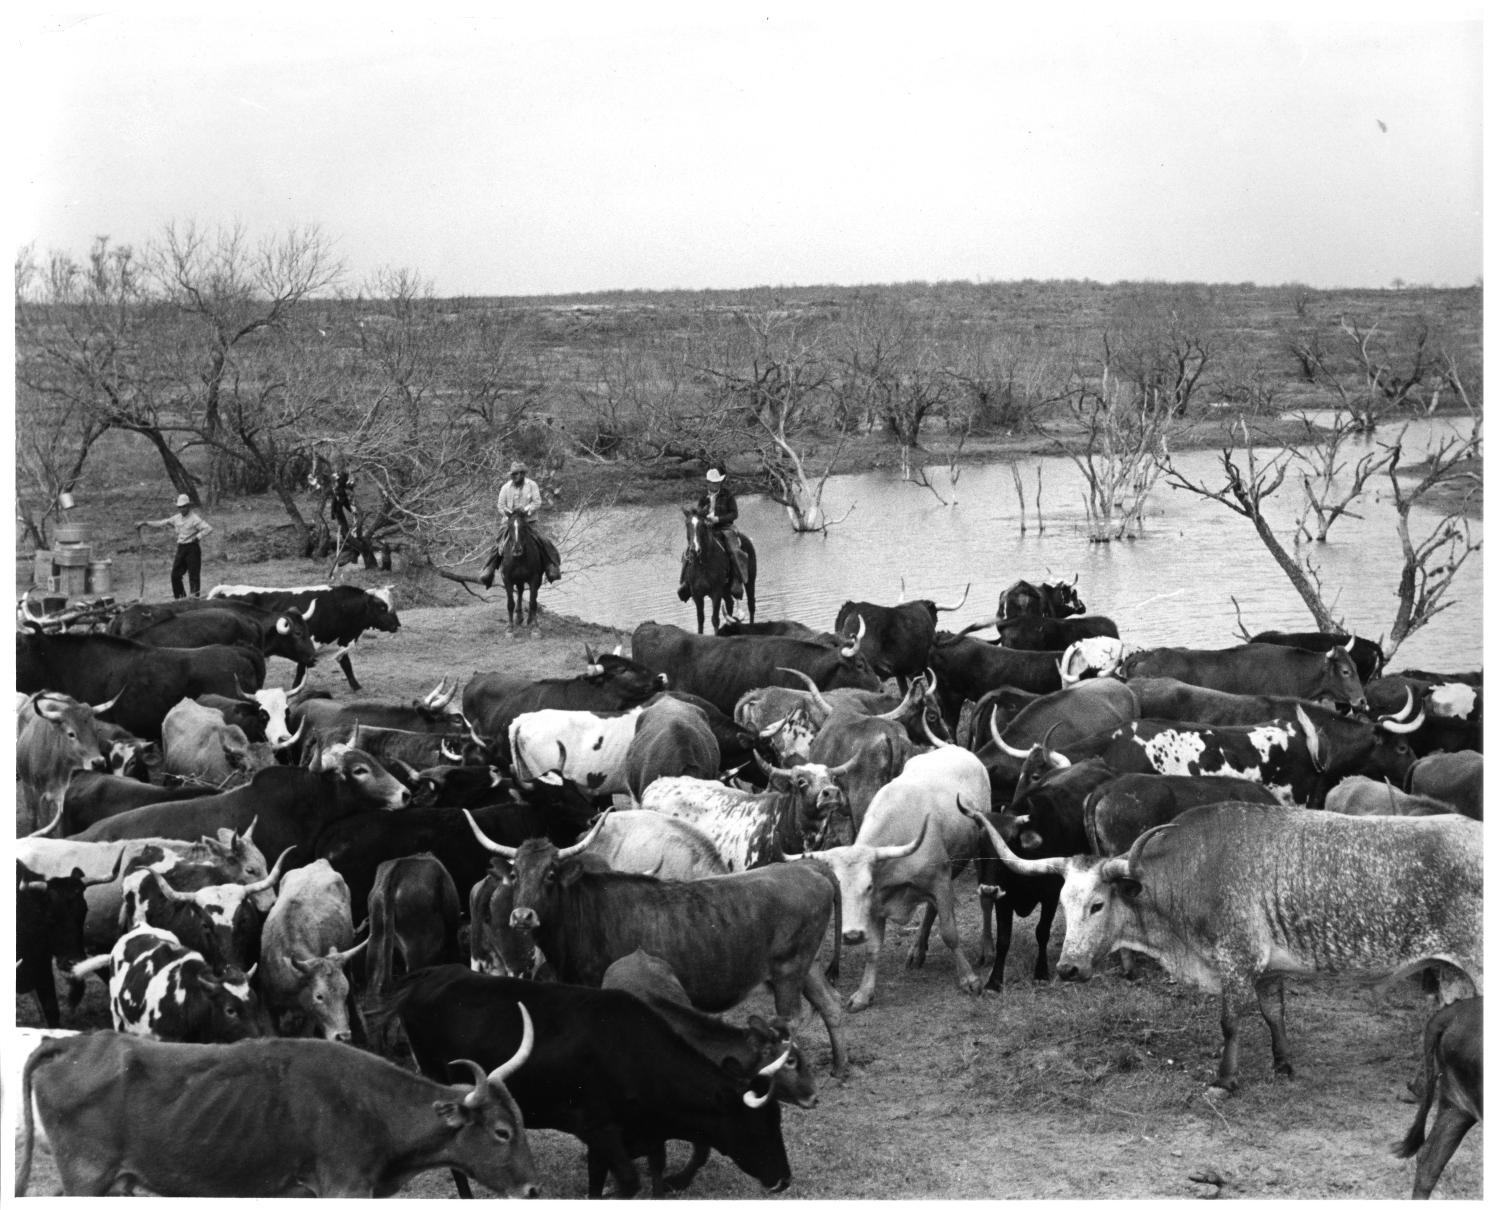 [Field of Longhorn Cattle] - Side 1 of 1 - The Portal to Texas History